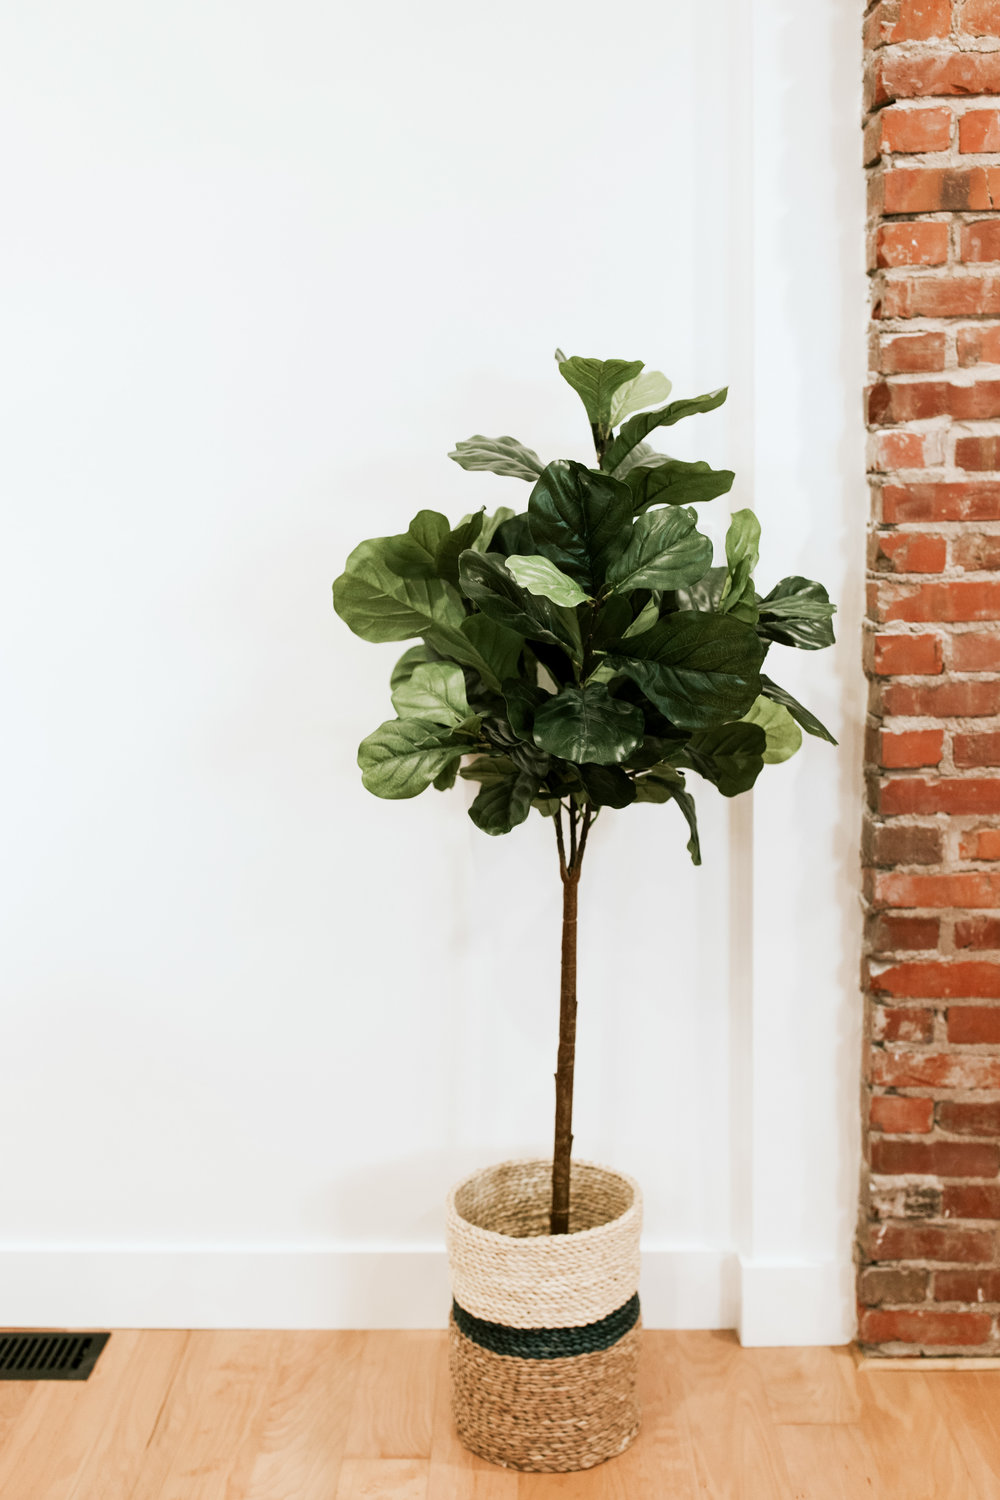 Faux Fiddle Leaf fig - Living room reveal of mid century modern, outdoorsy style home